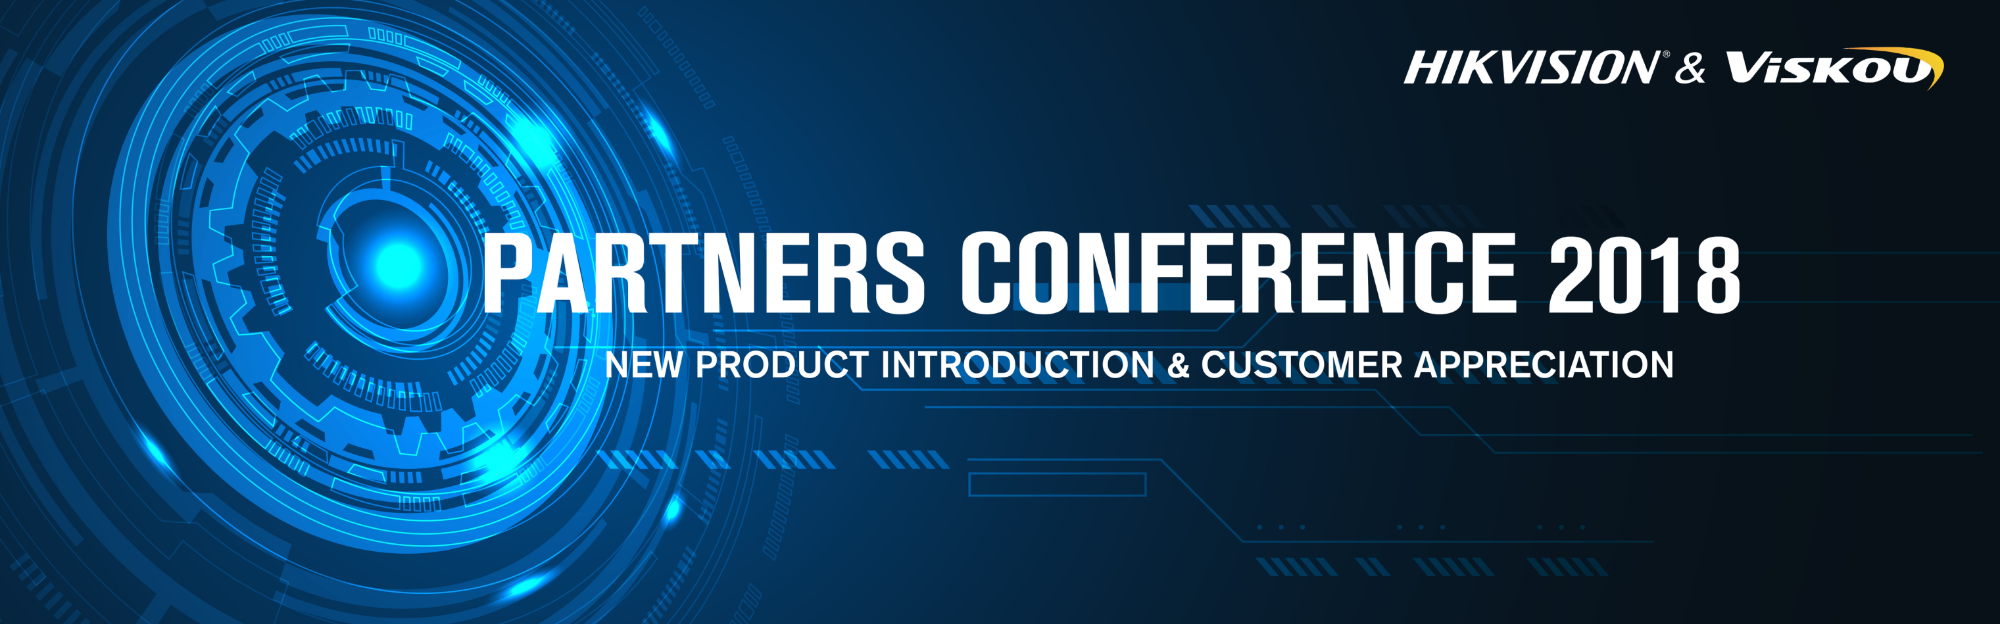 Partners Conference 2018